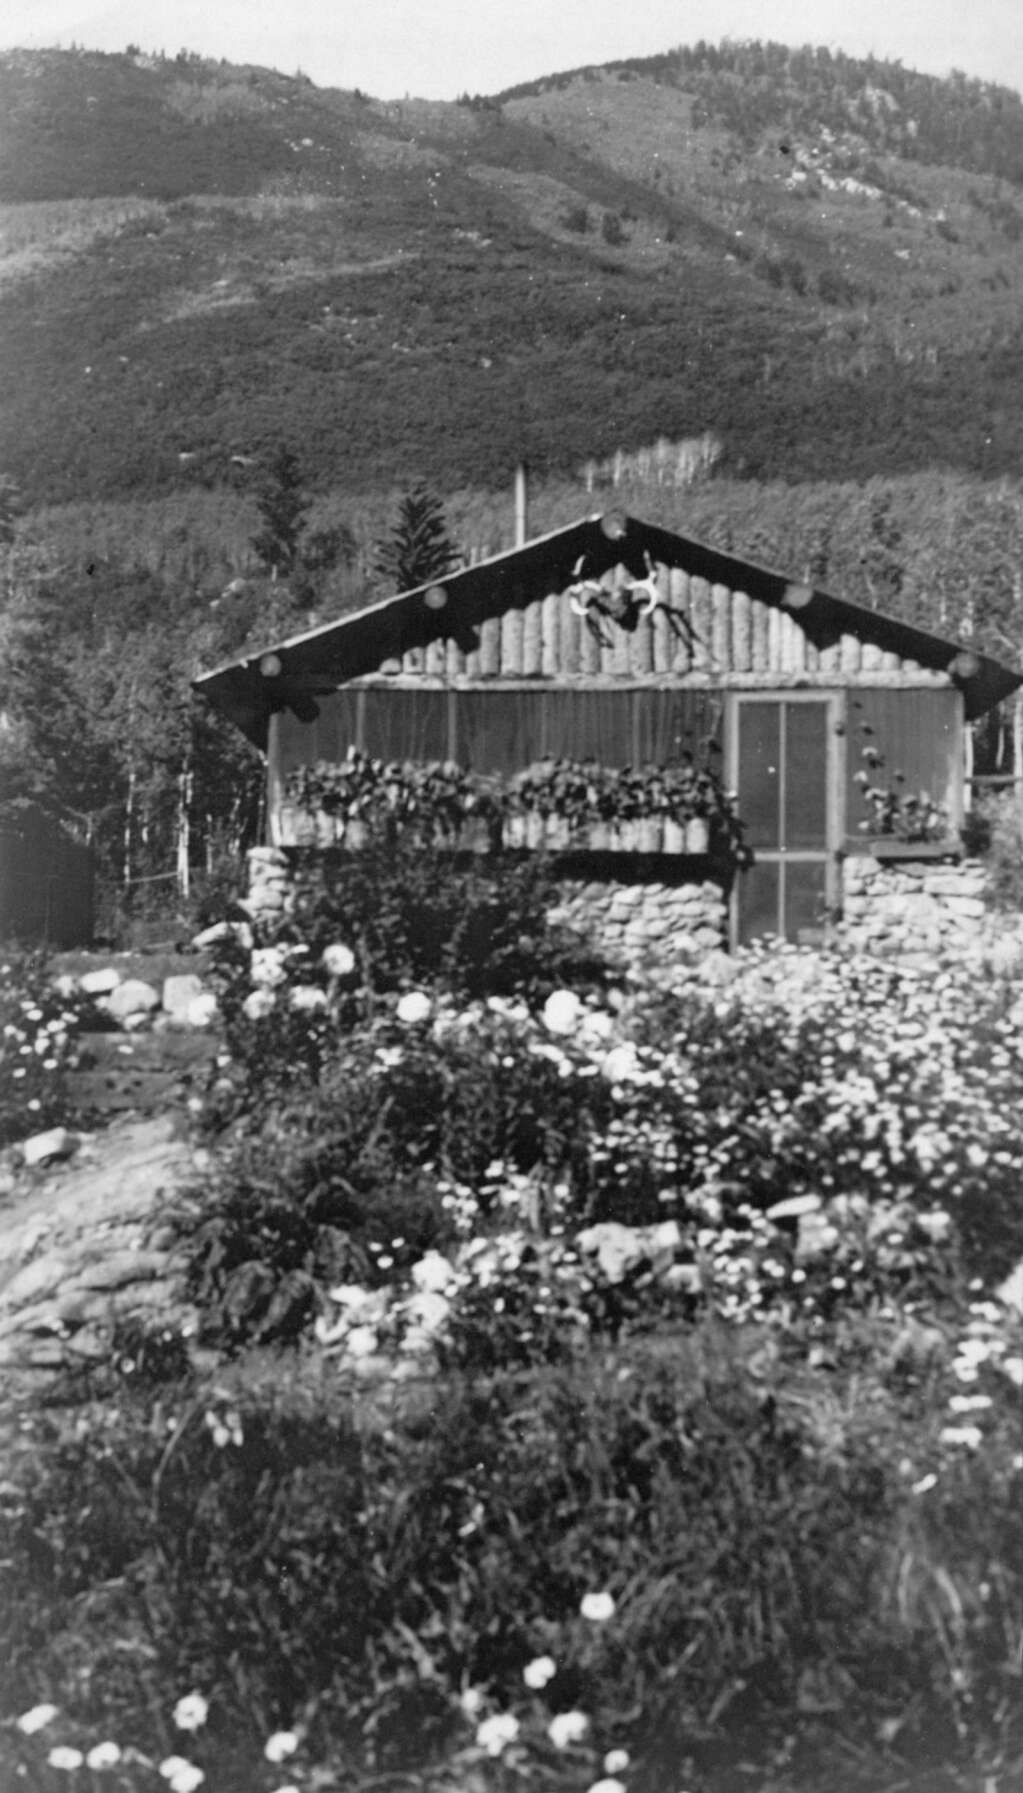 """Stirling """"Buzz"""" Cooper was born in this cabin, known as The Bungalow, in 1931. It burned down when he was a child.   Cooper family/courtesy photo"""